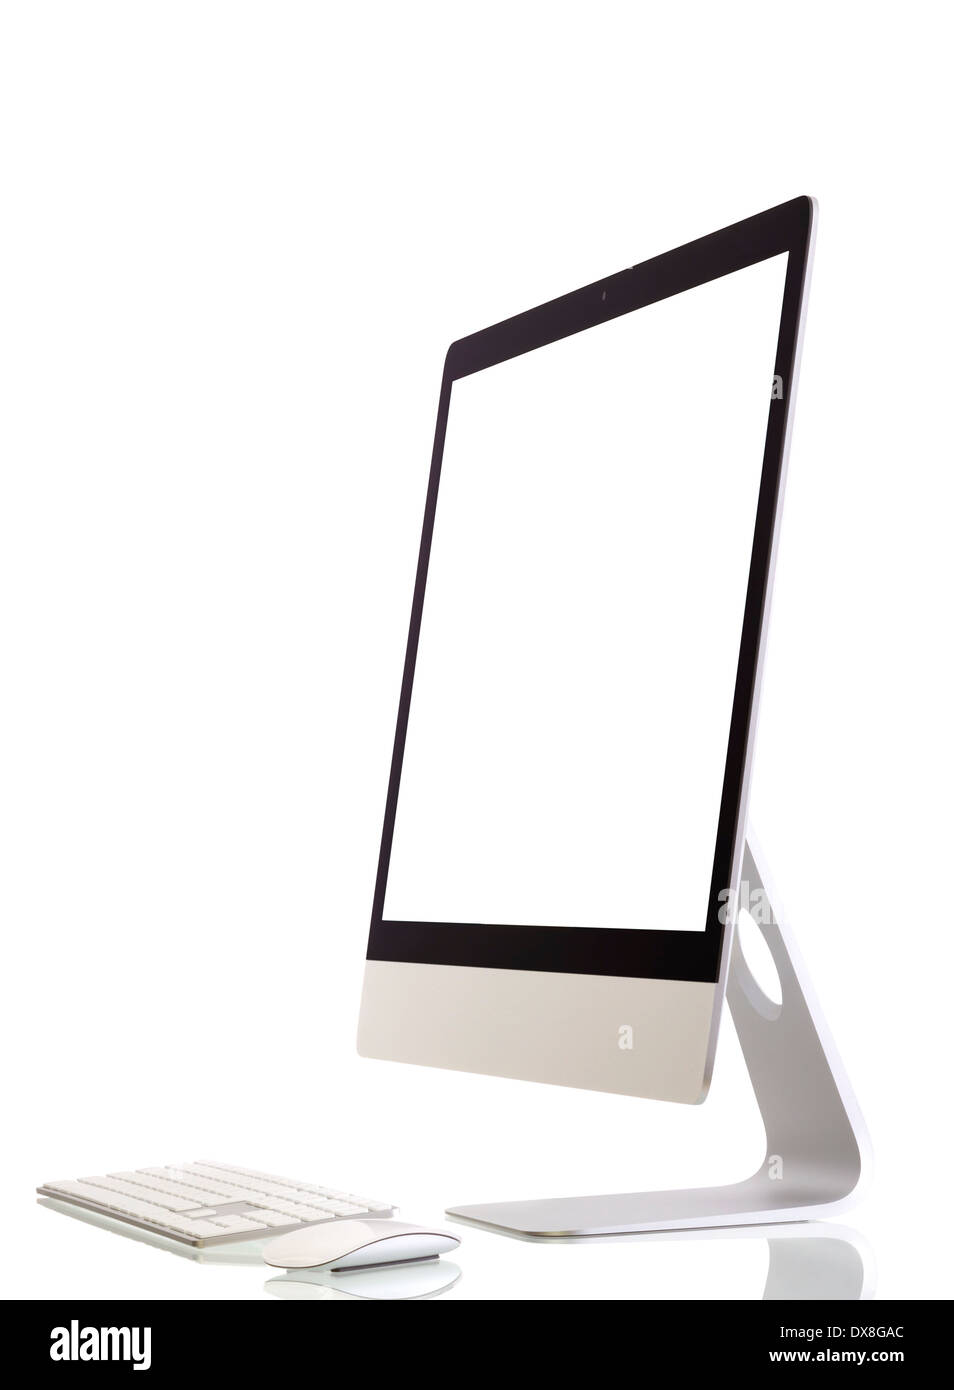 Illustration of modern computer monitor with blank screen. Isolated on white. added for screen. - Stock Image